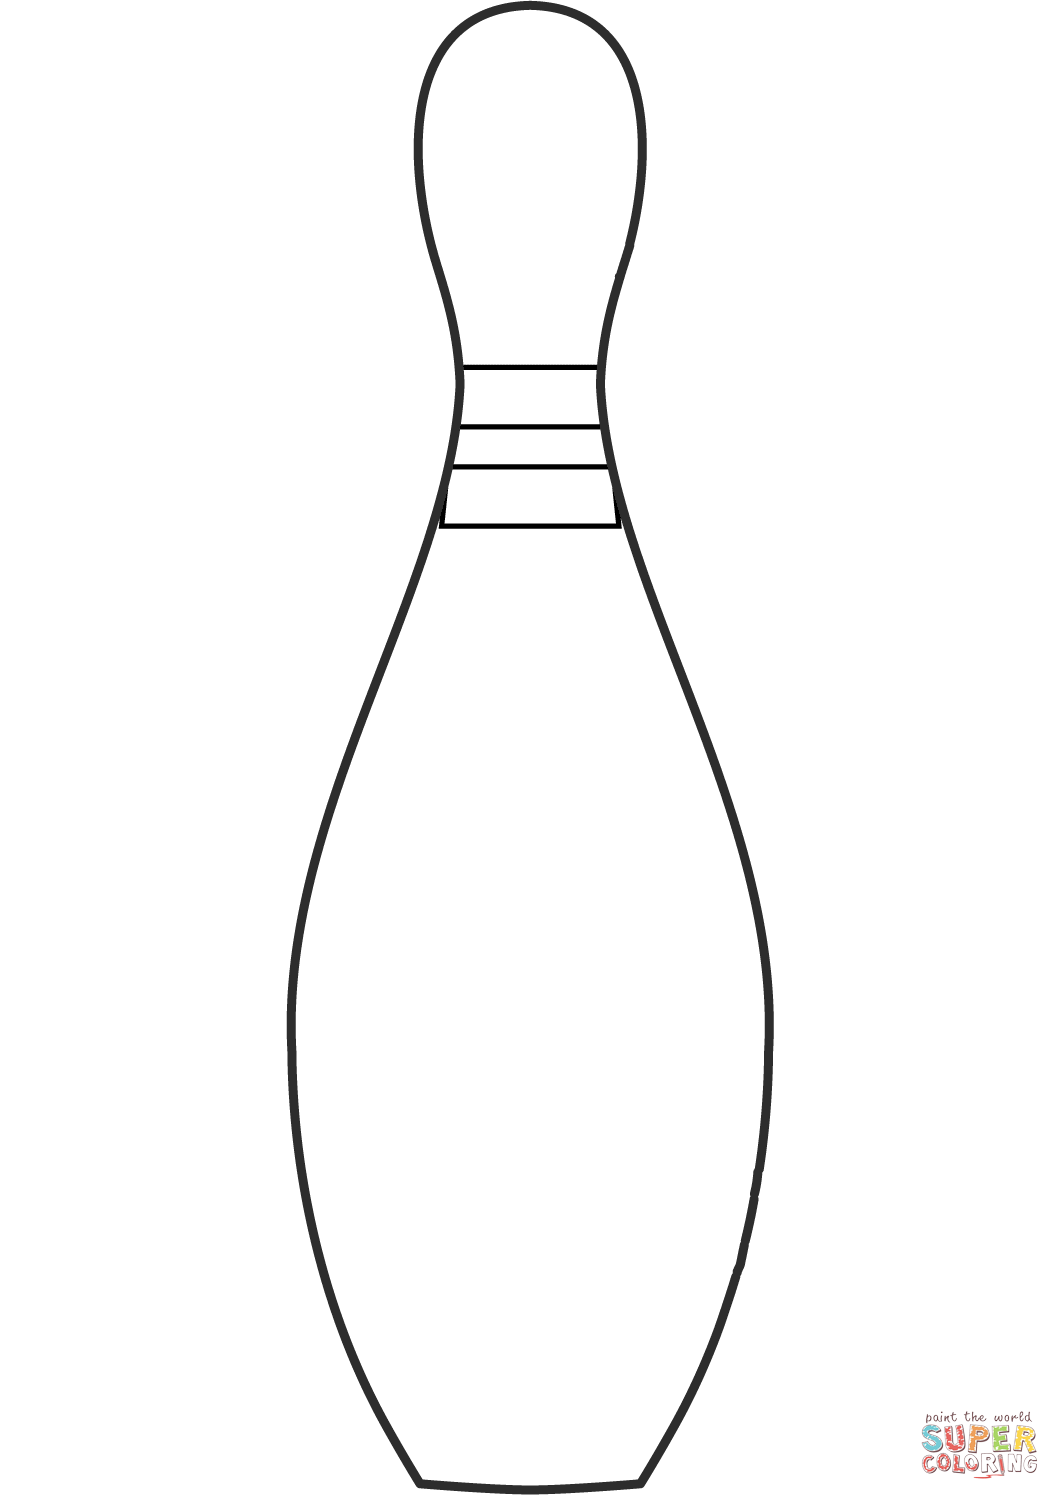 Bowling Pin Coloring Page Free Printable Coloring Pages Bowling Pins Free Printable Coloring Free Printable Coloring Pages